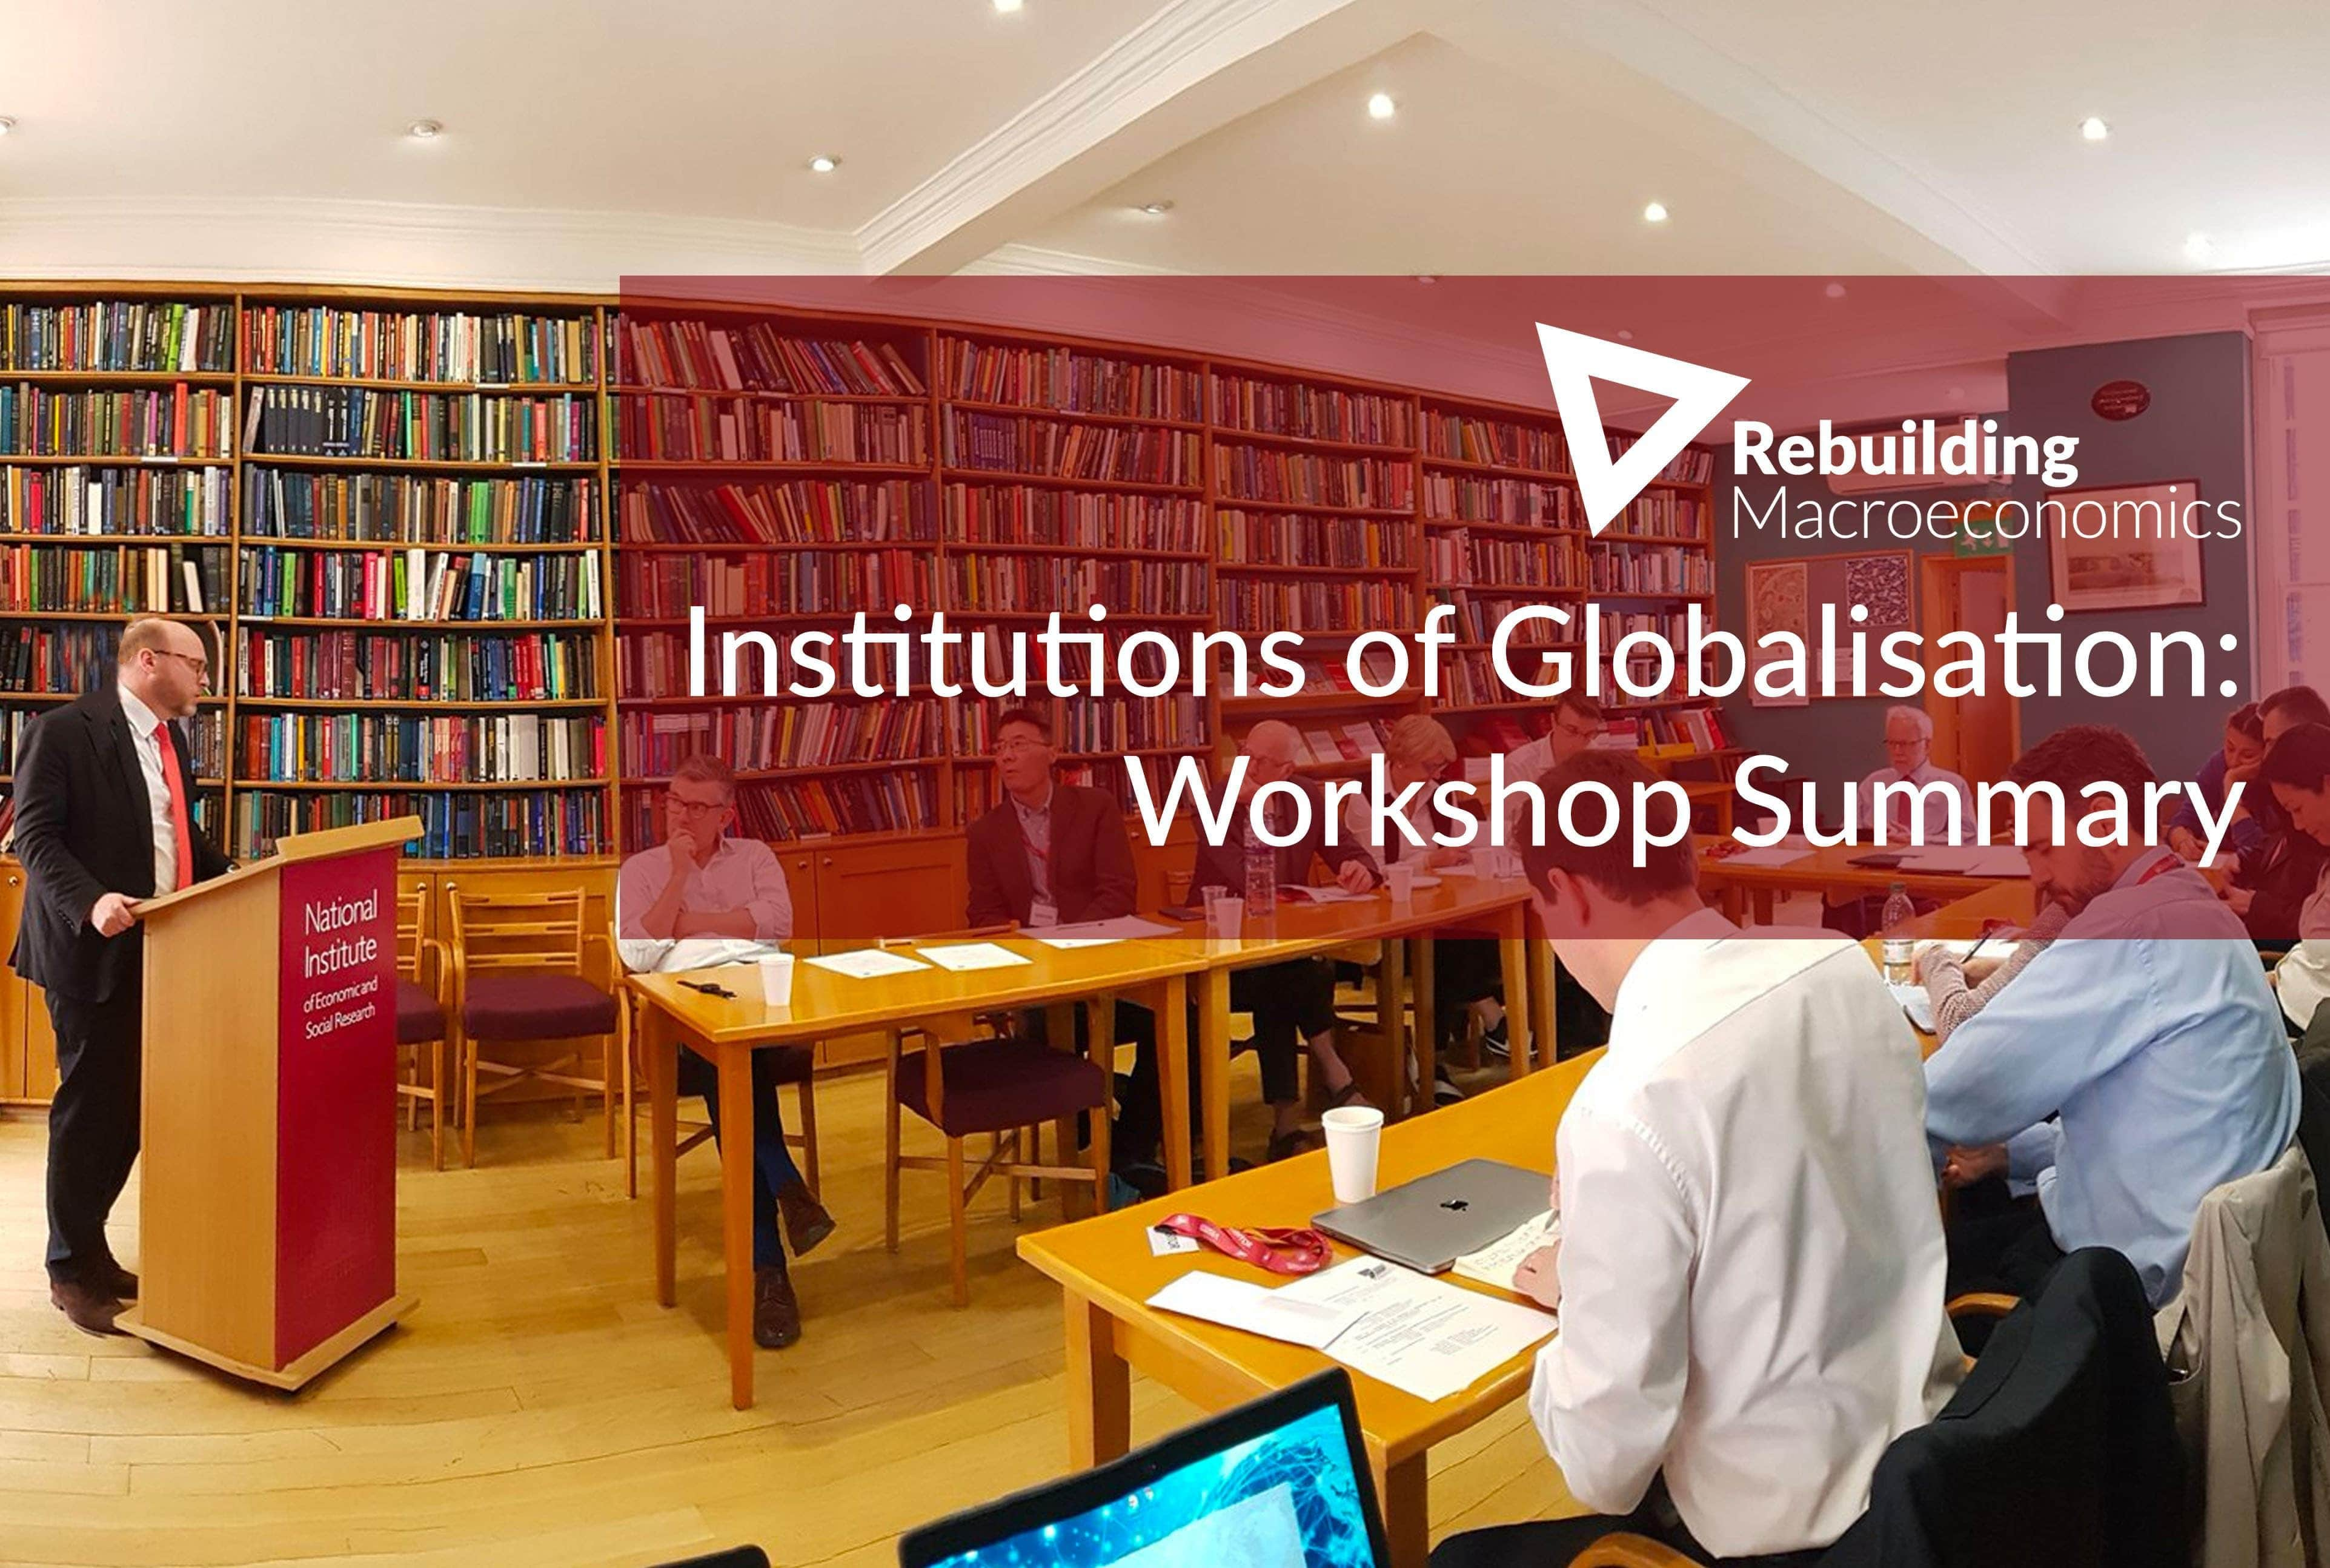 Globalisationhubworkshop